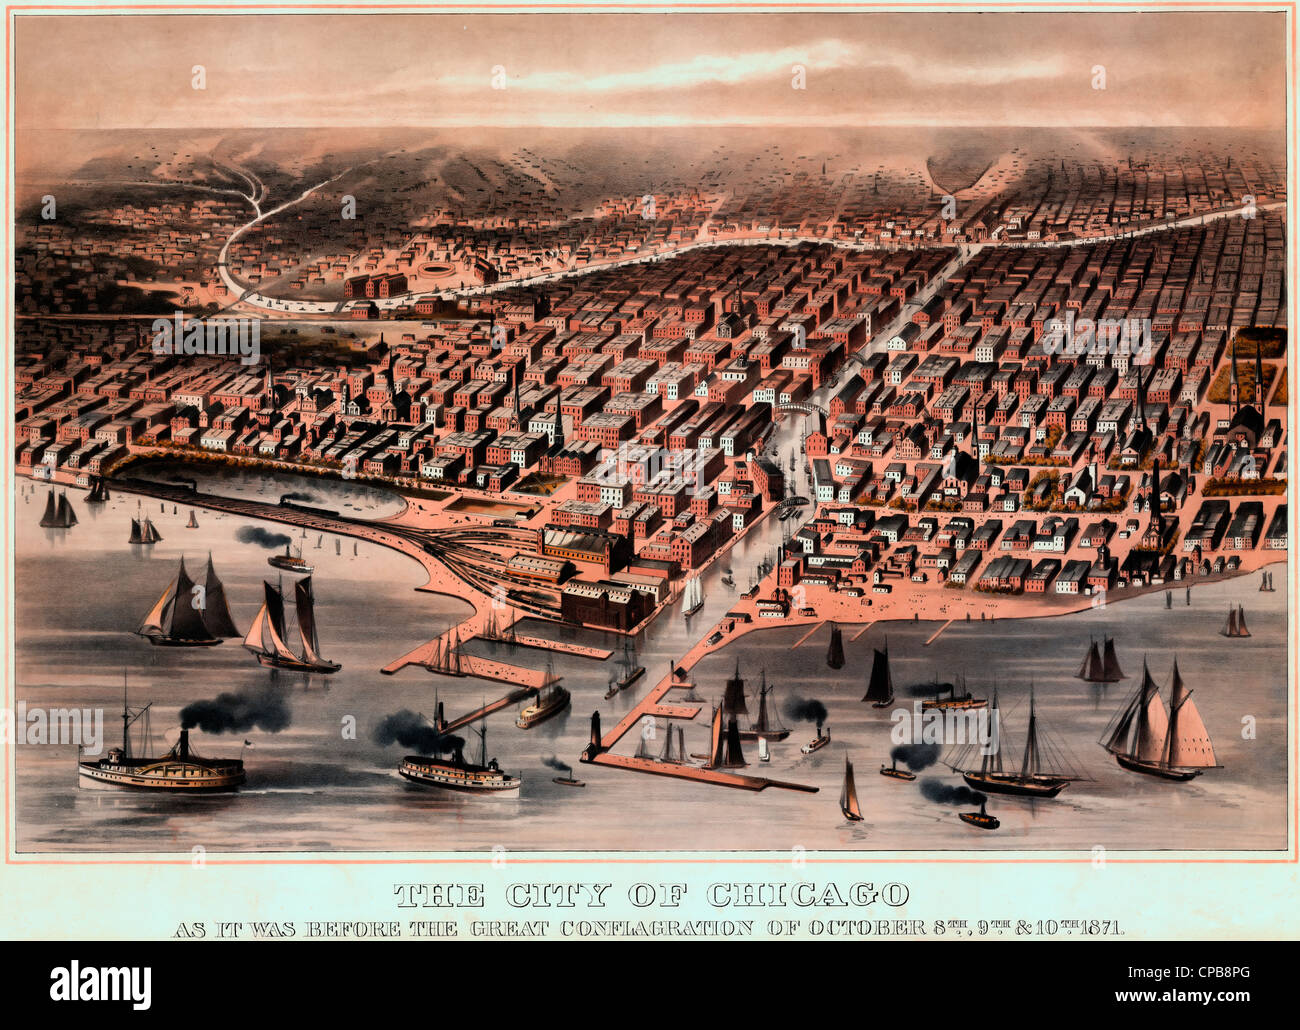 The City of Chicago as it was before the Great Conflagration of October 1871 - Stock Image